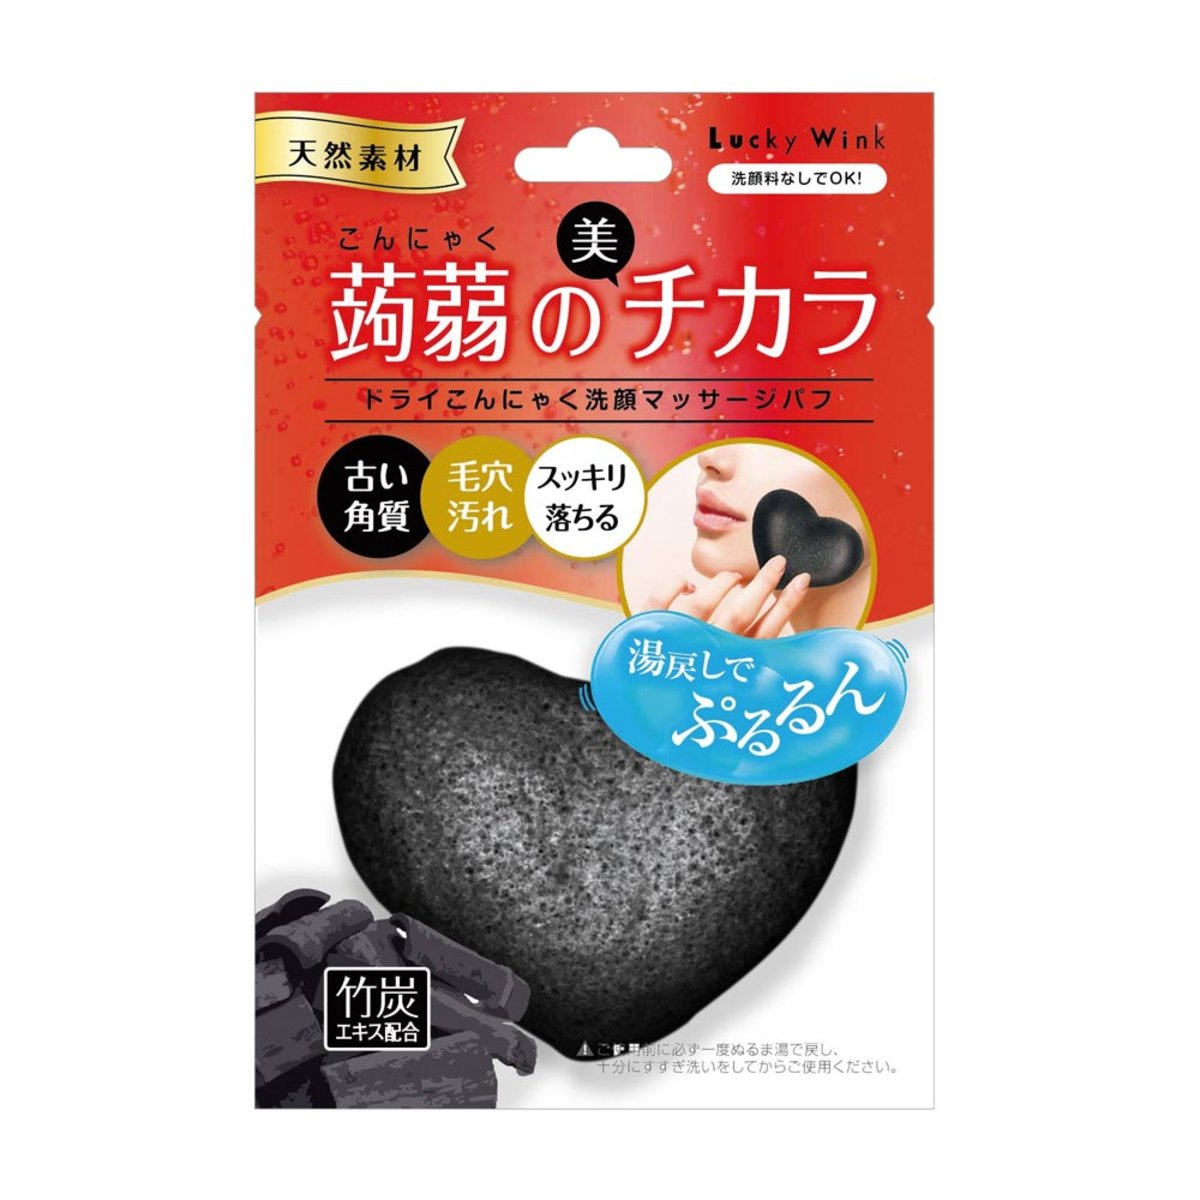 Dry Konjac Face Massage Puff PFD400